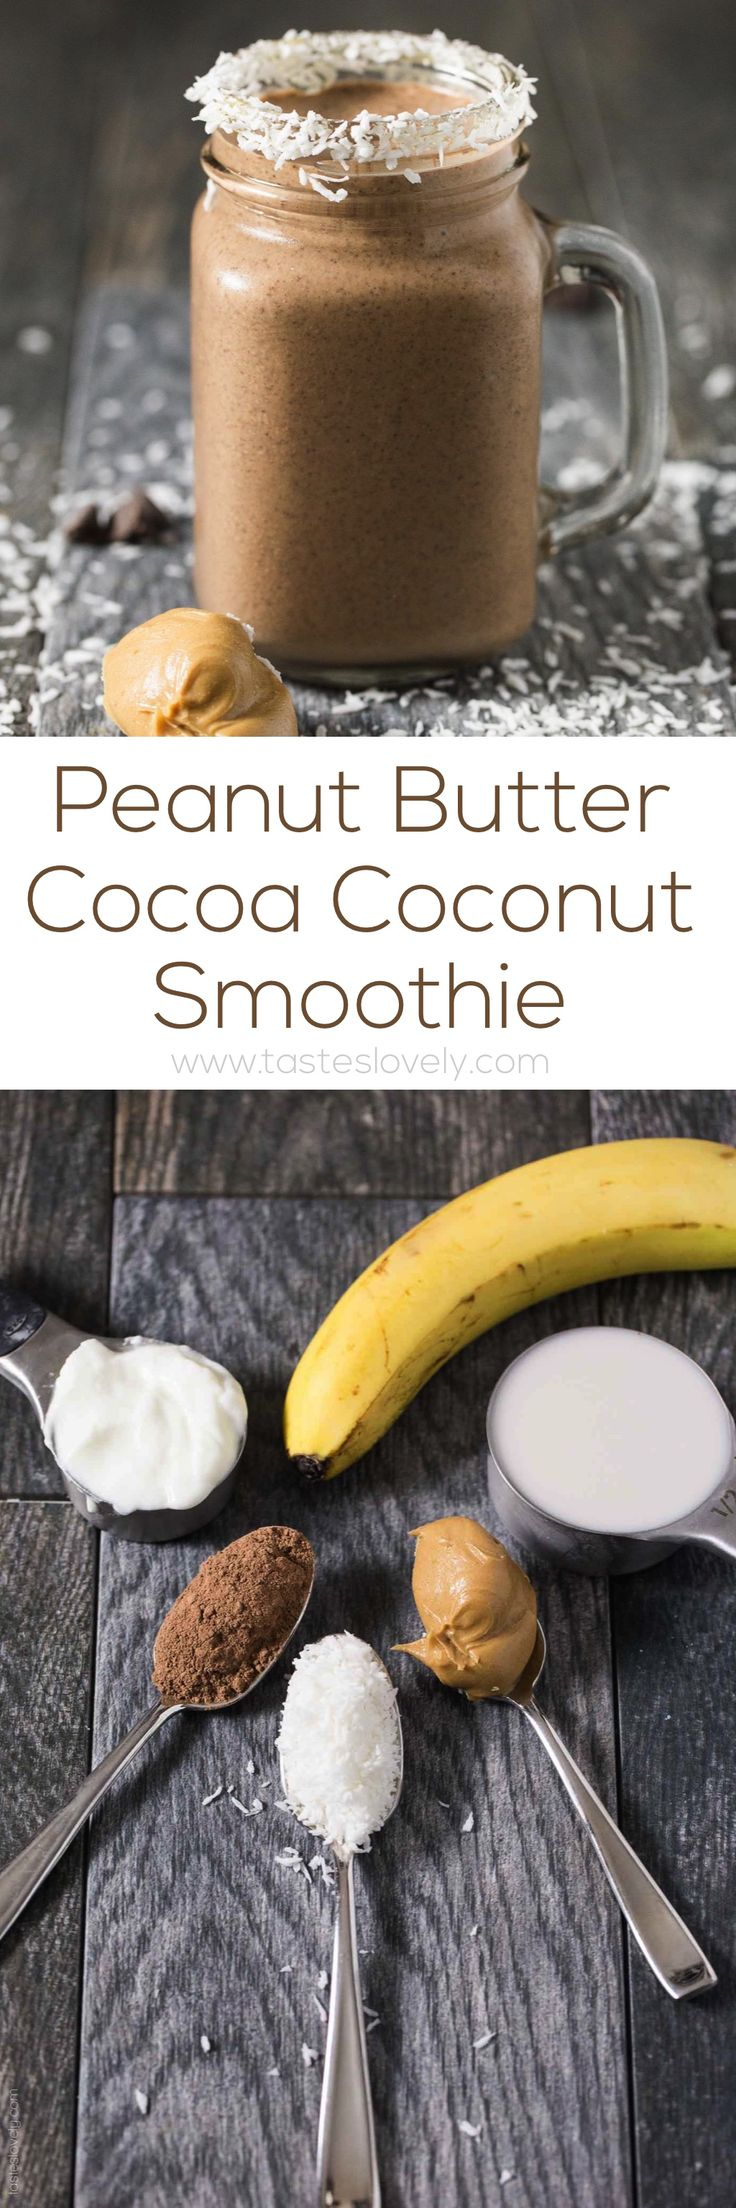 This Peanut Butter Cocoa Coconut Smoothie recipe will make your day! It makes a healthy breakfast or a tasty snack.